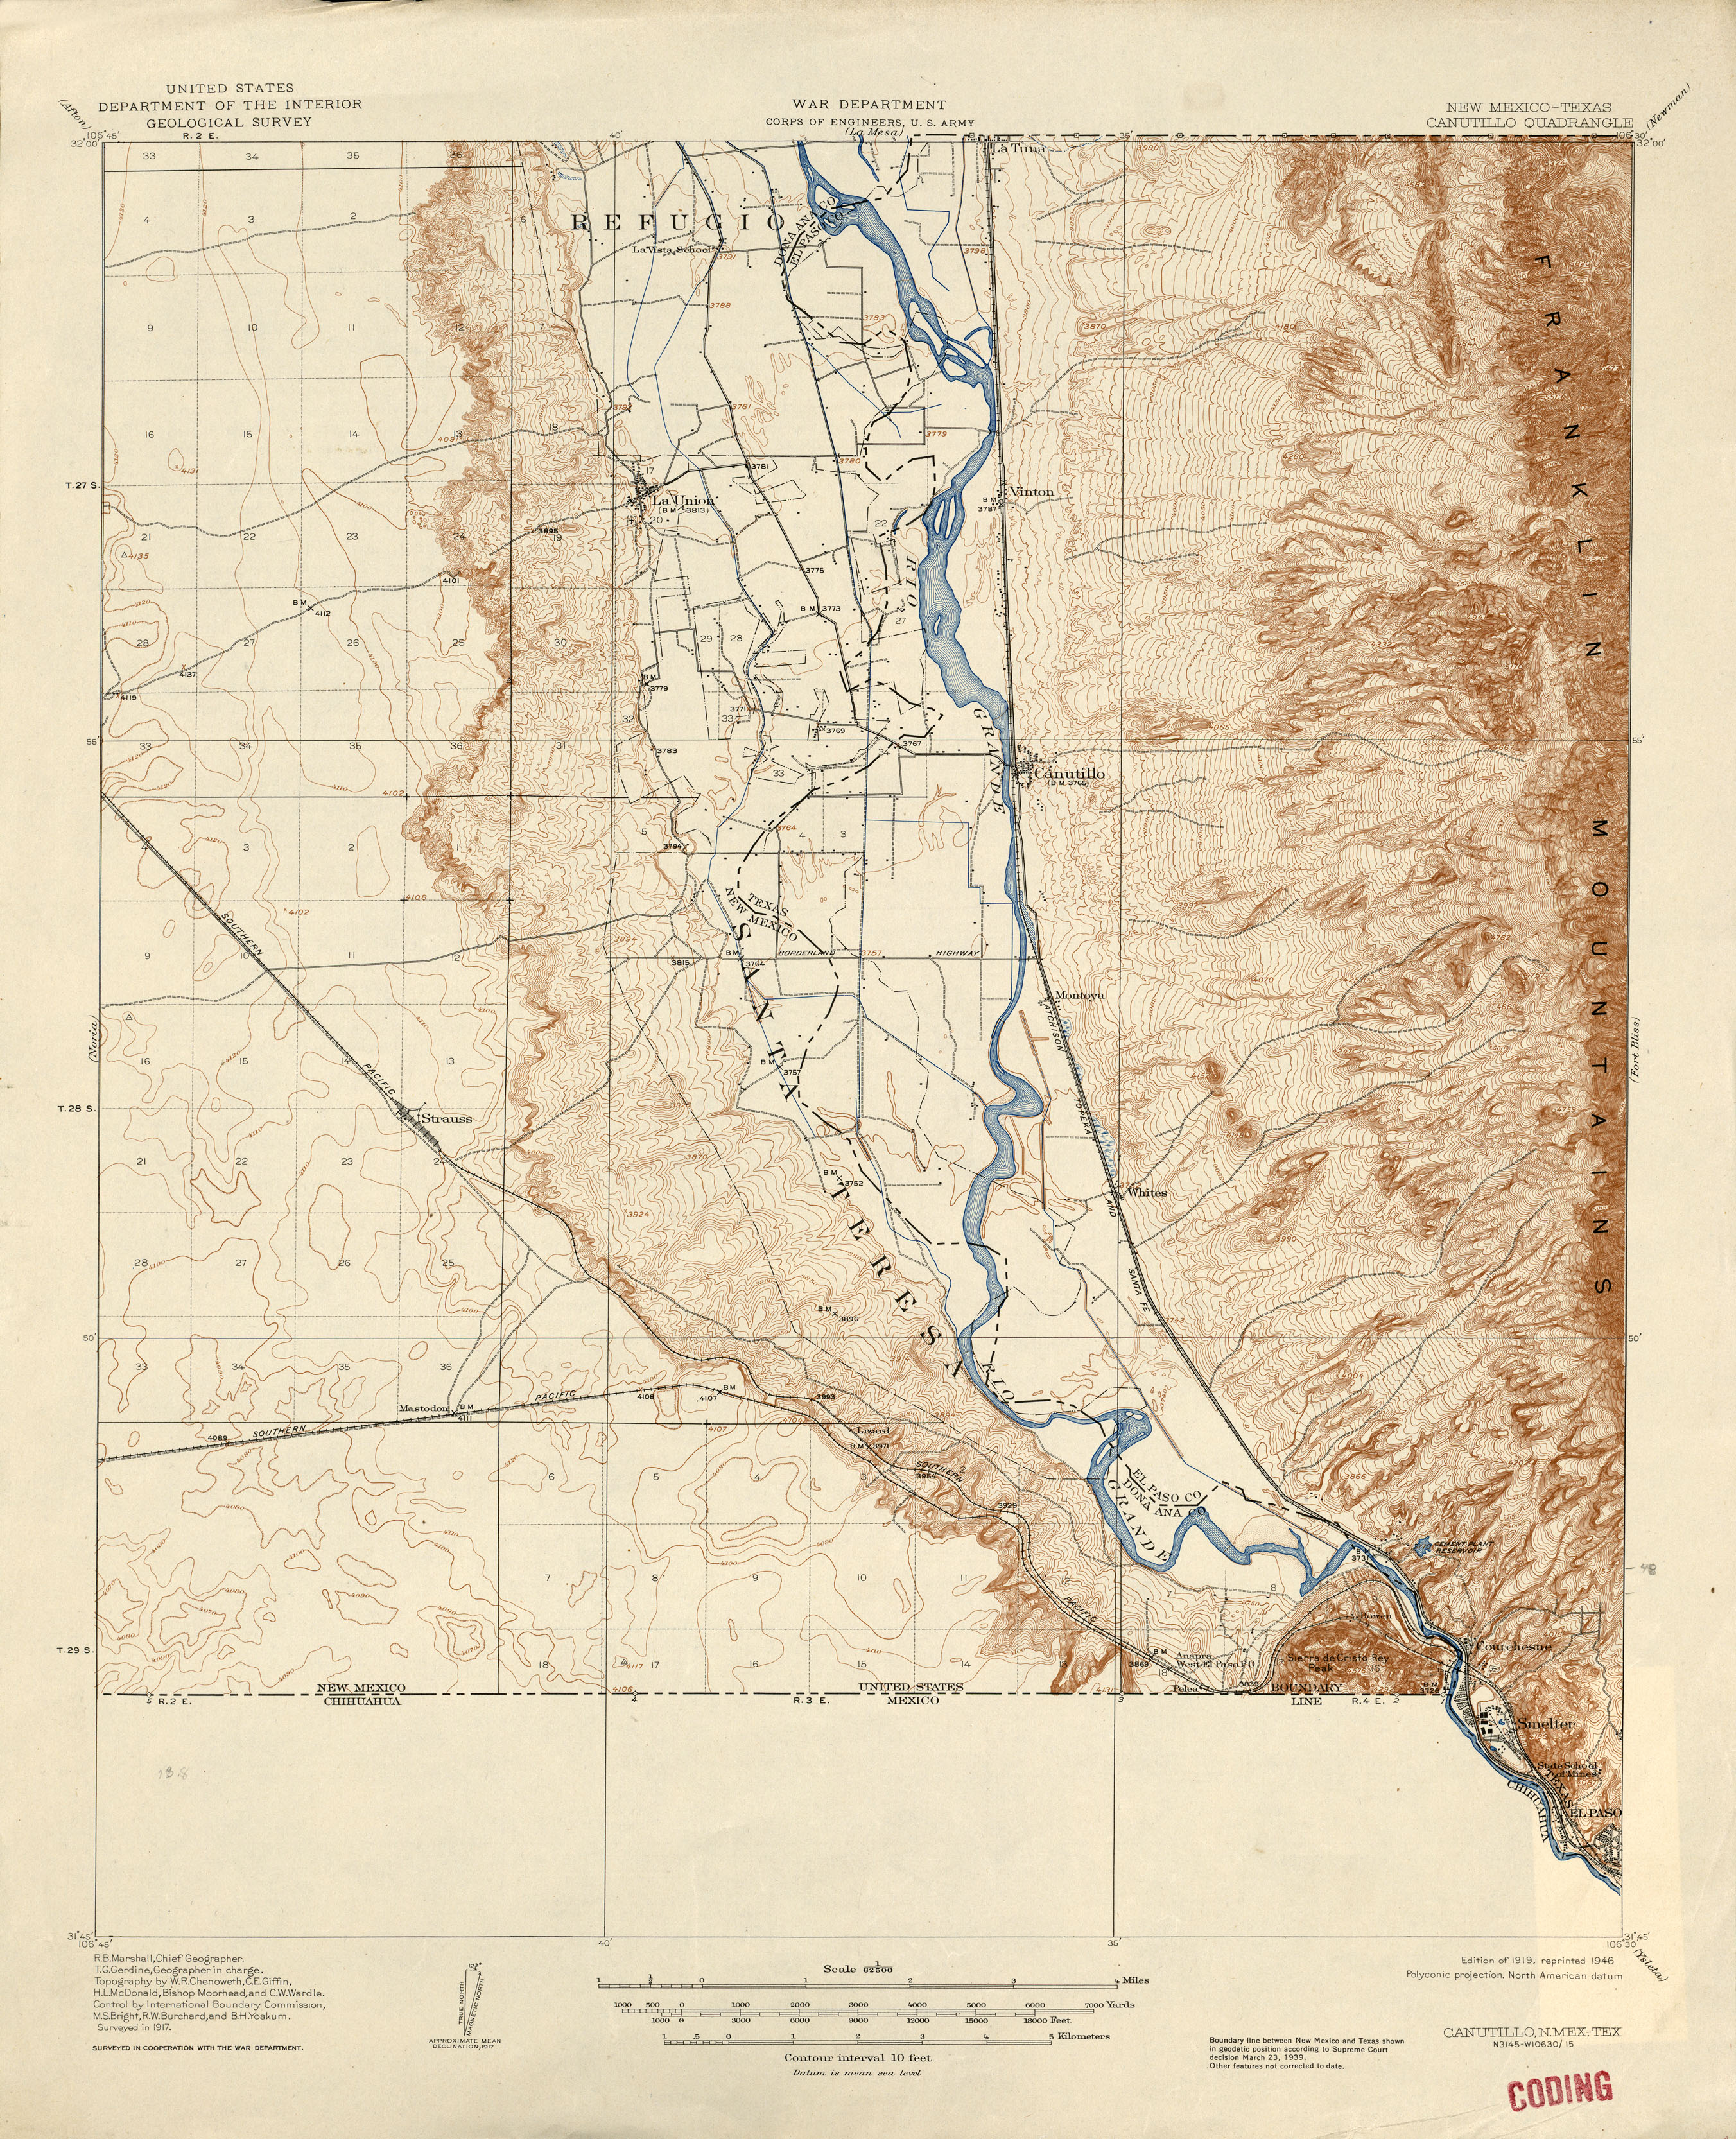 New Mexico Historical Topographic Maps PerryCastañeda Map - Maps new mexico